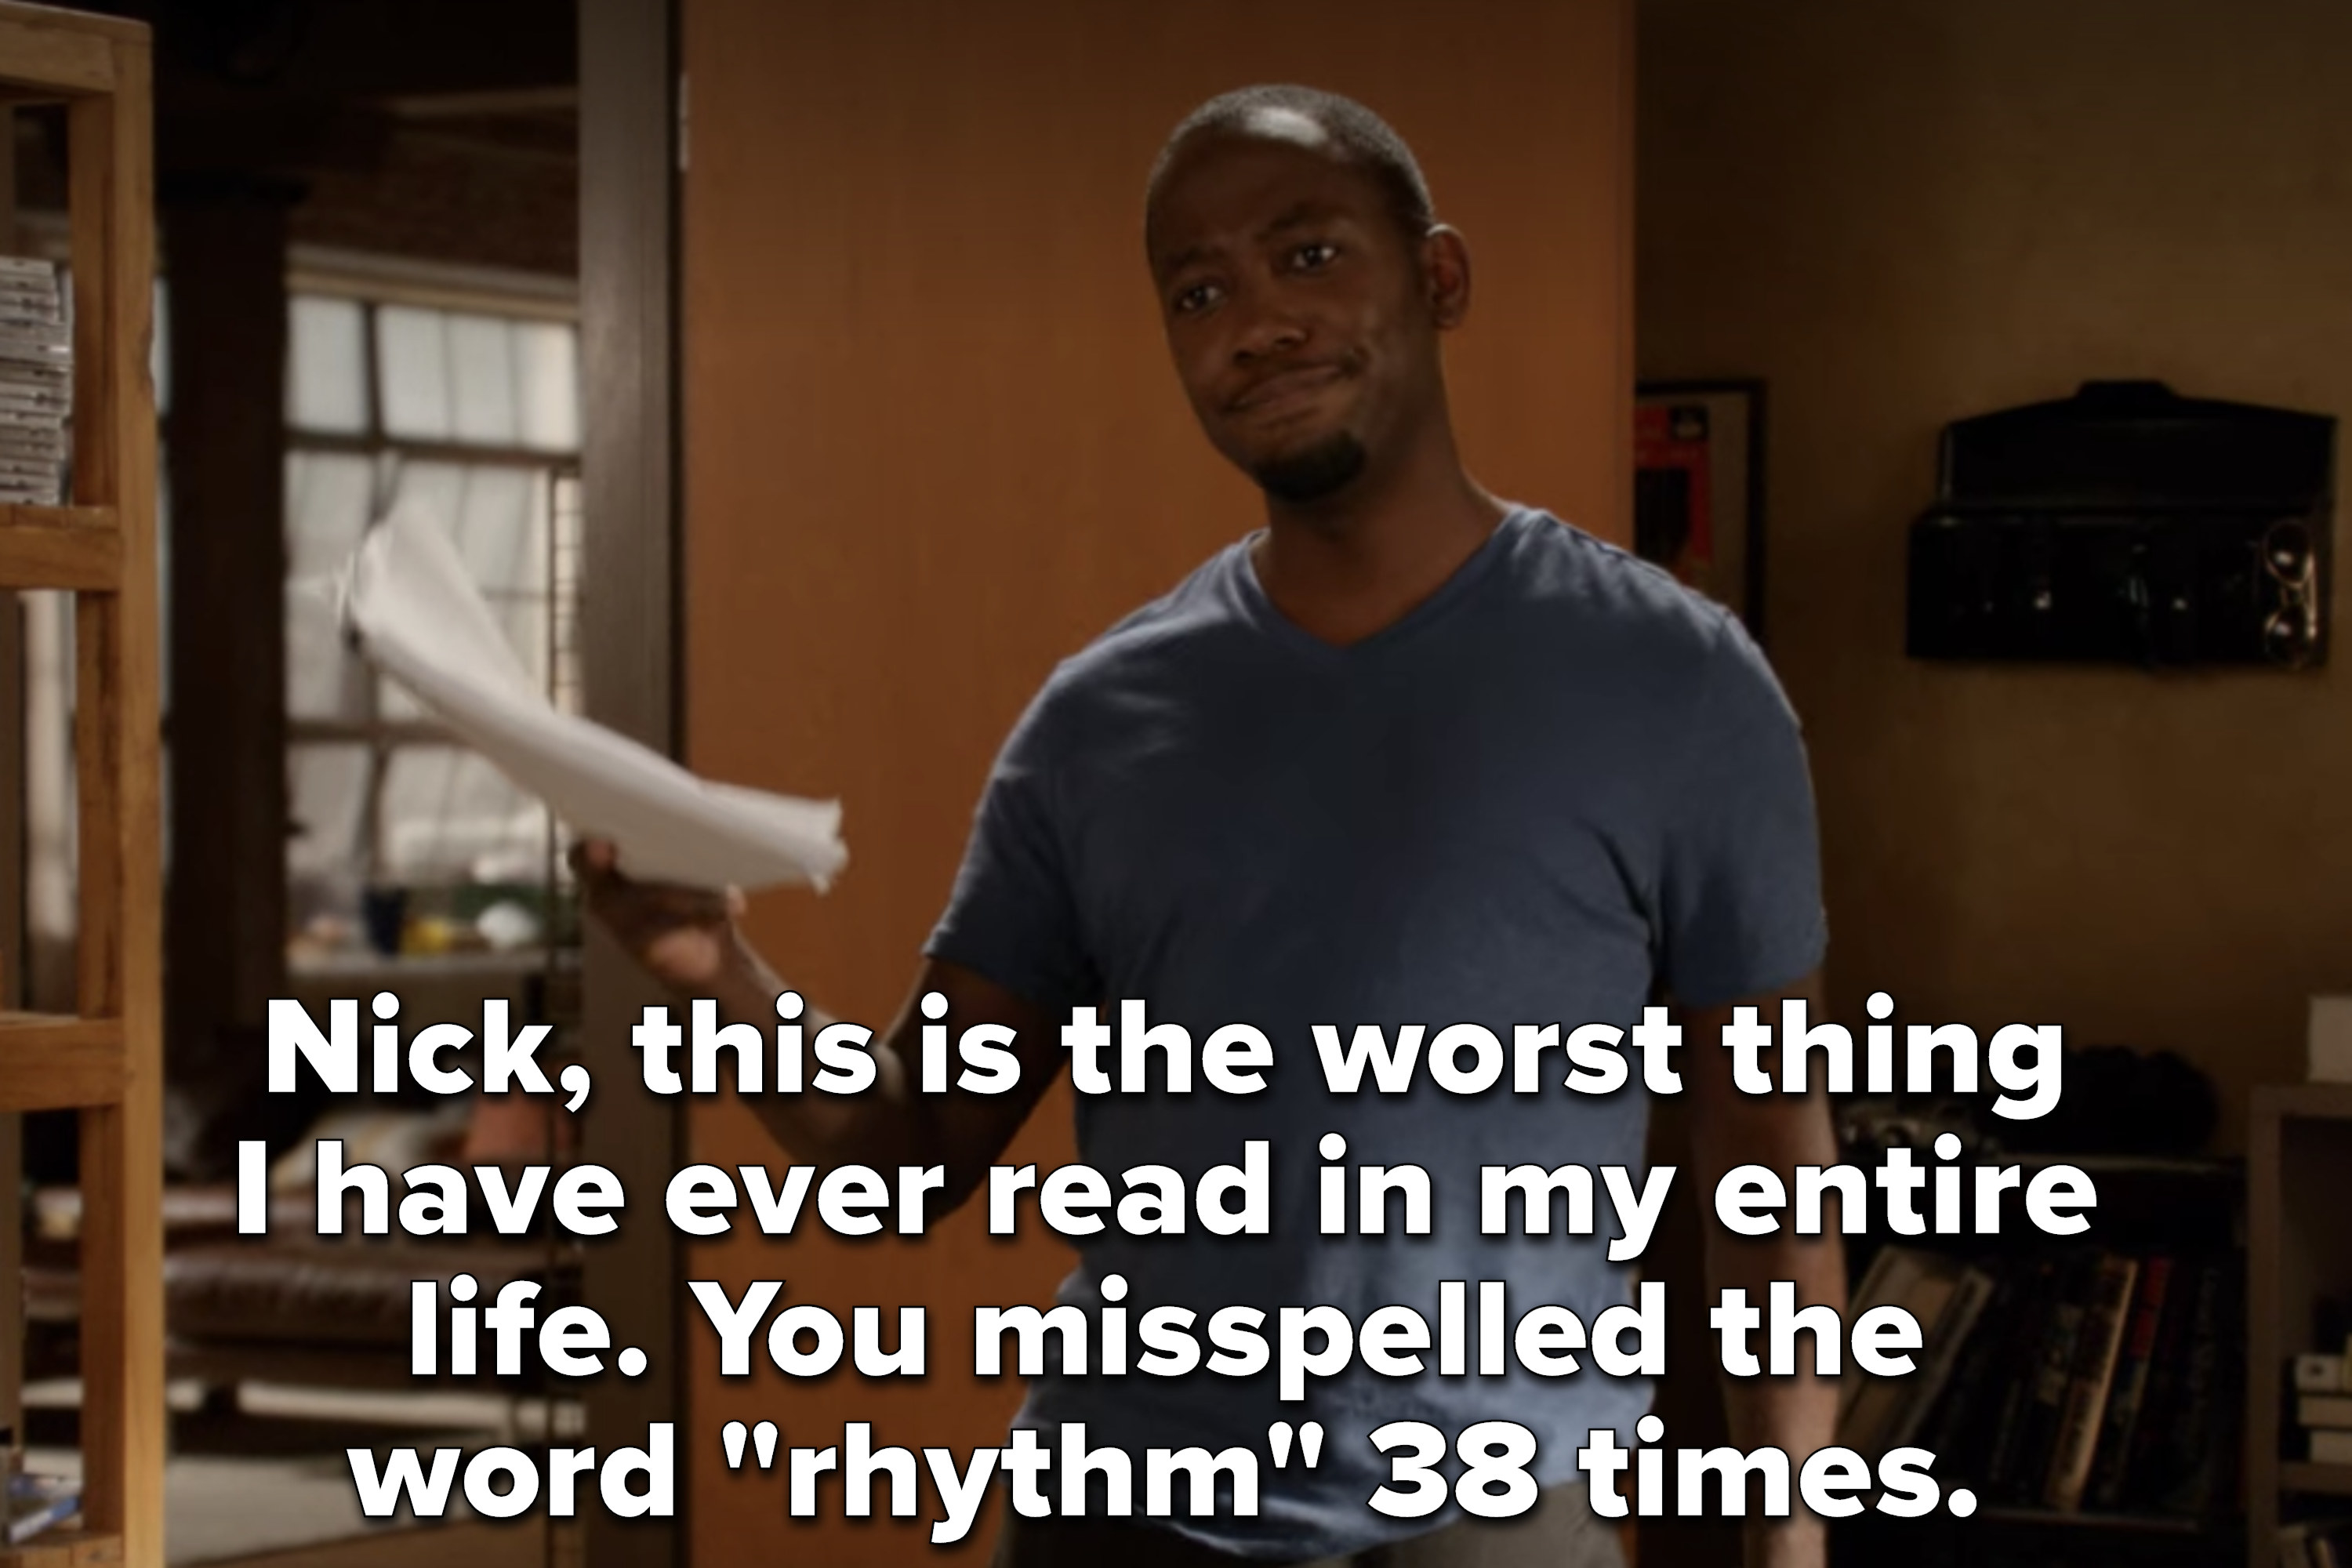 """Winston holding Nick's zombie novel saying """"Nick, this is the worst thing I have ever read in entire my life. You misspelled the word 'rhythm' 38 times"""""""